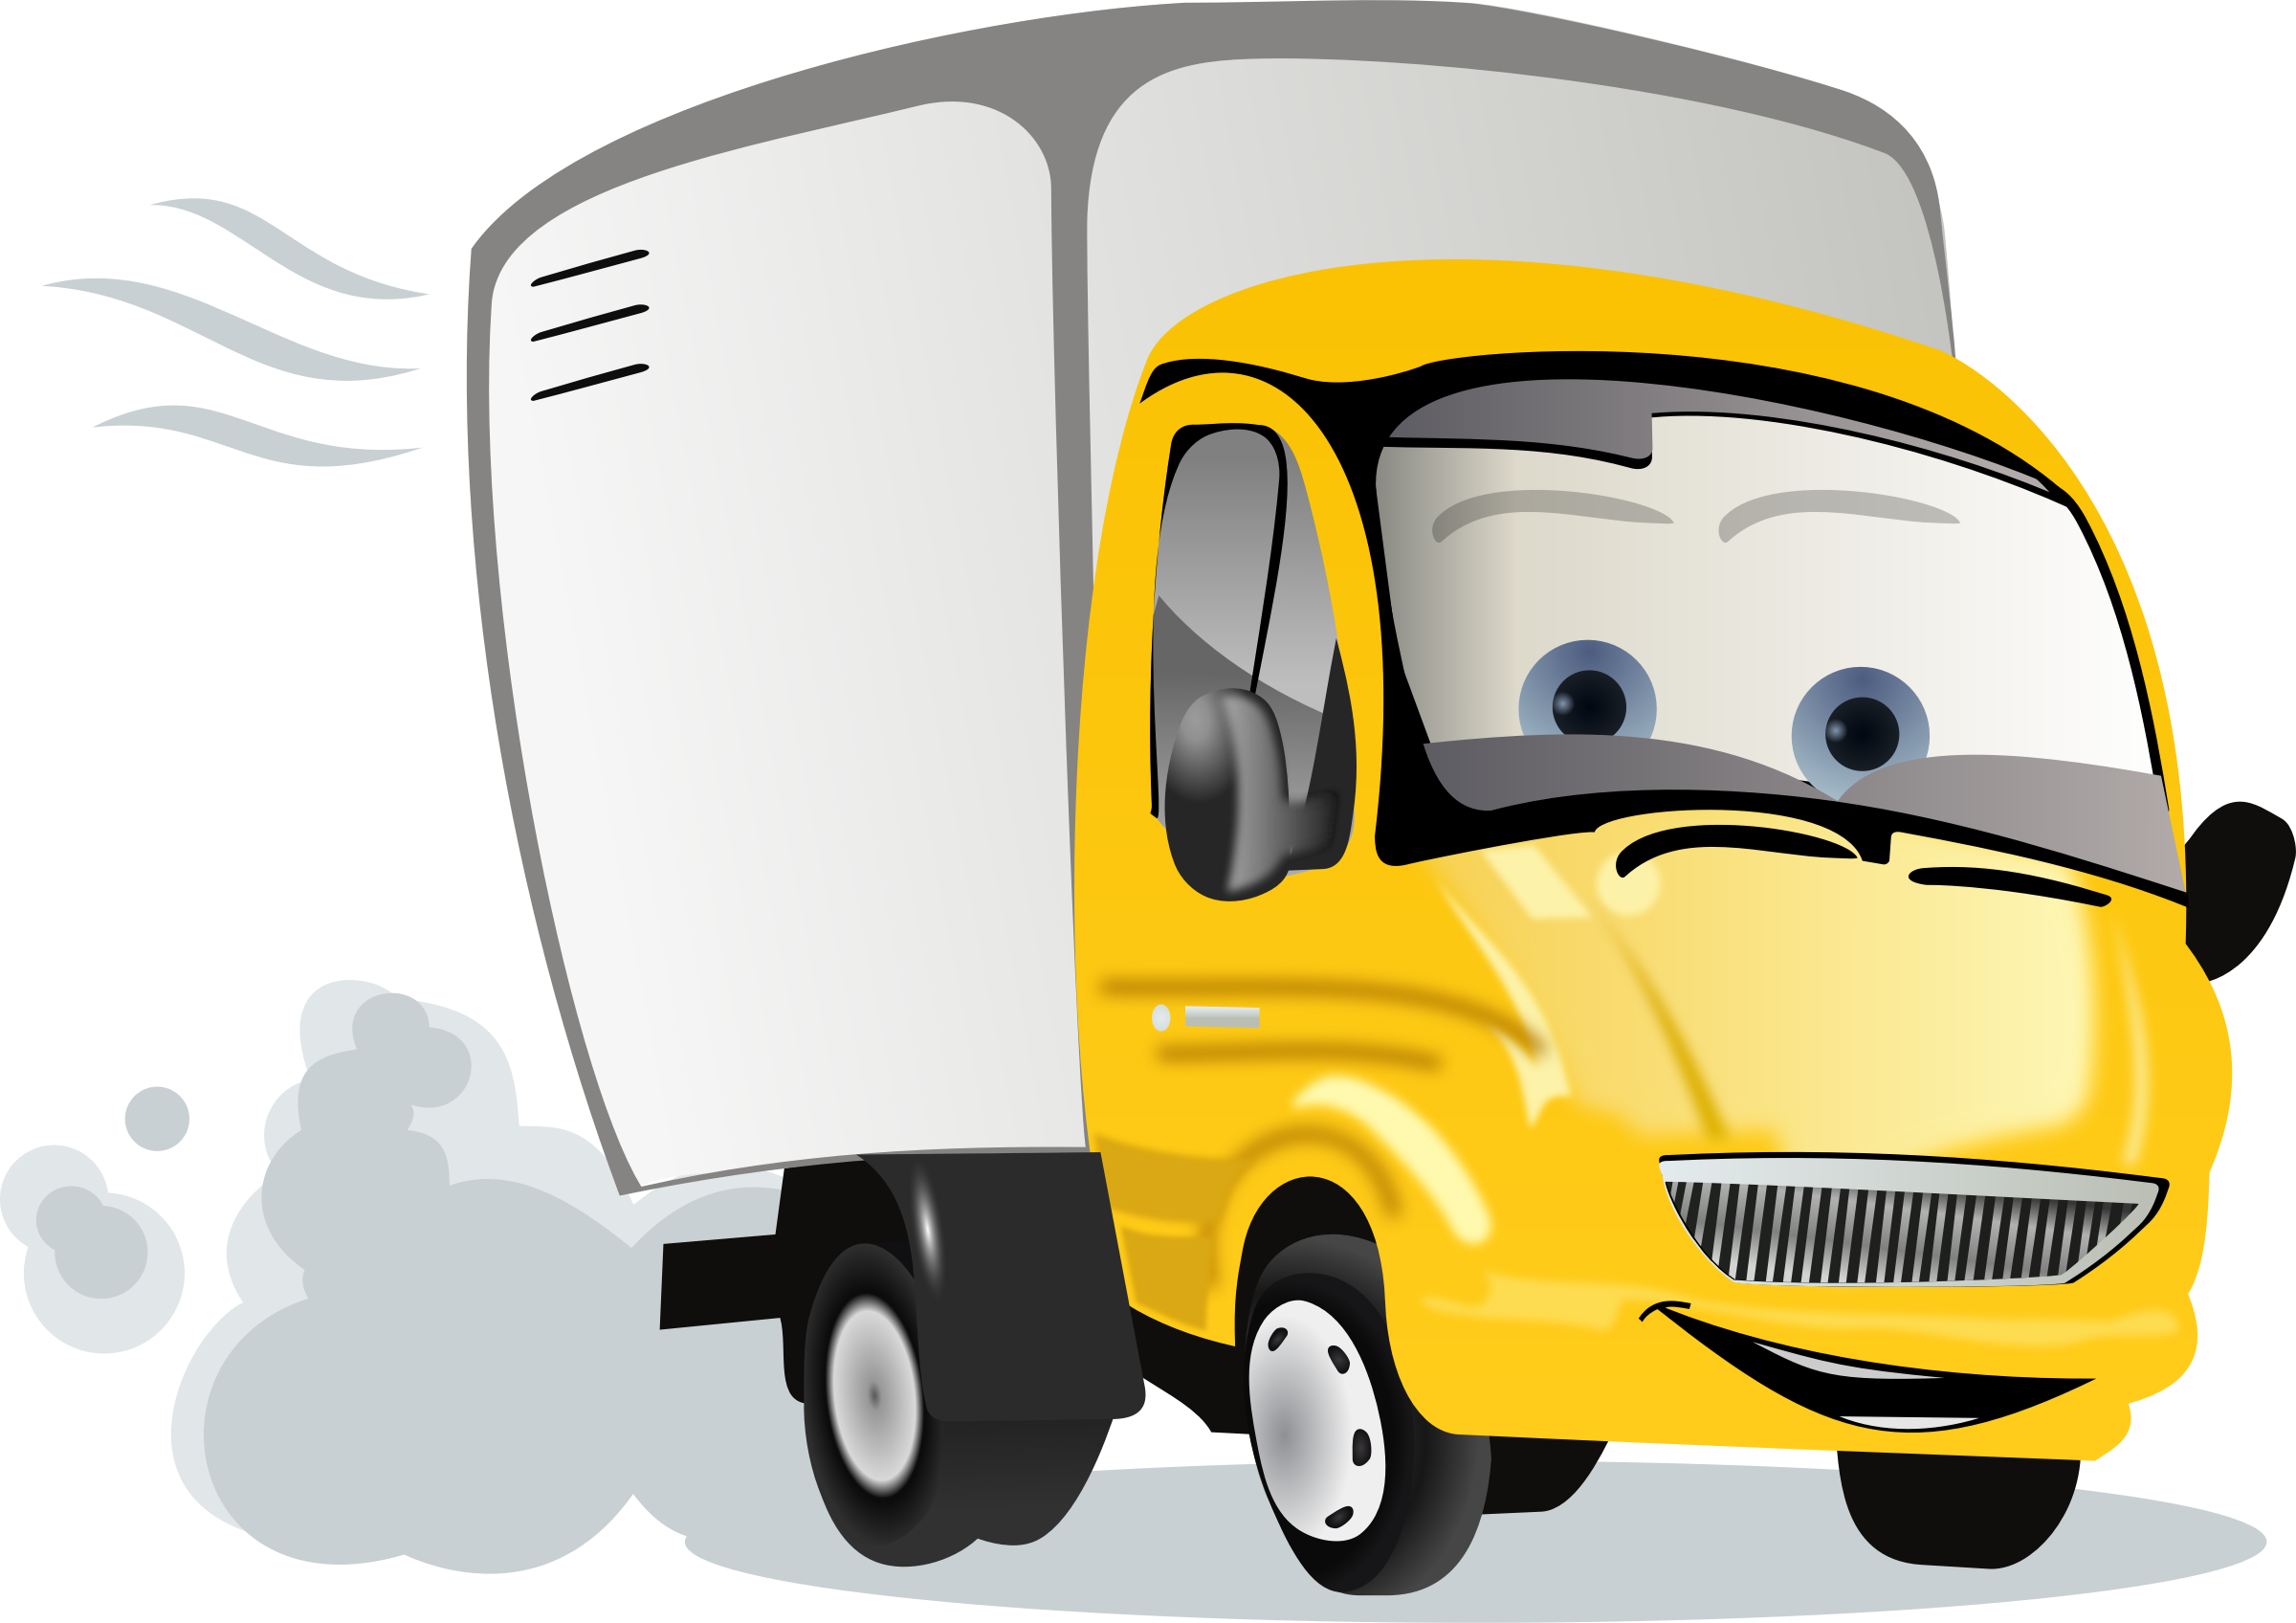 Pollution clipart truck. Cartoon trucks image group